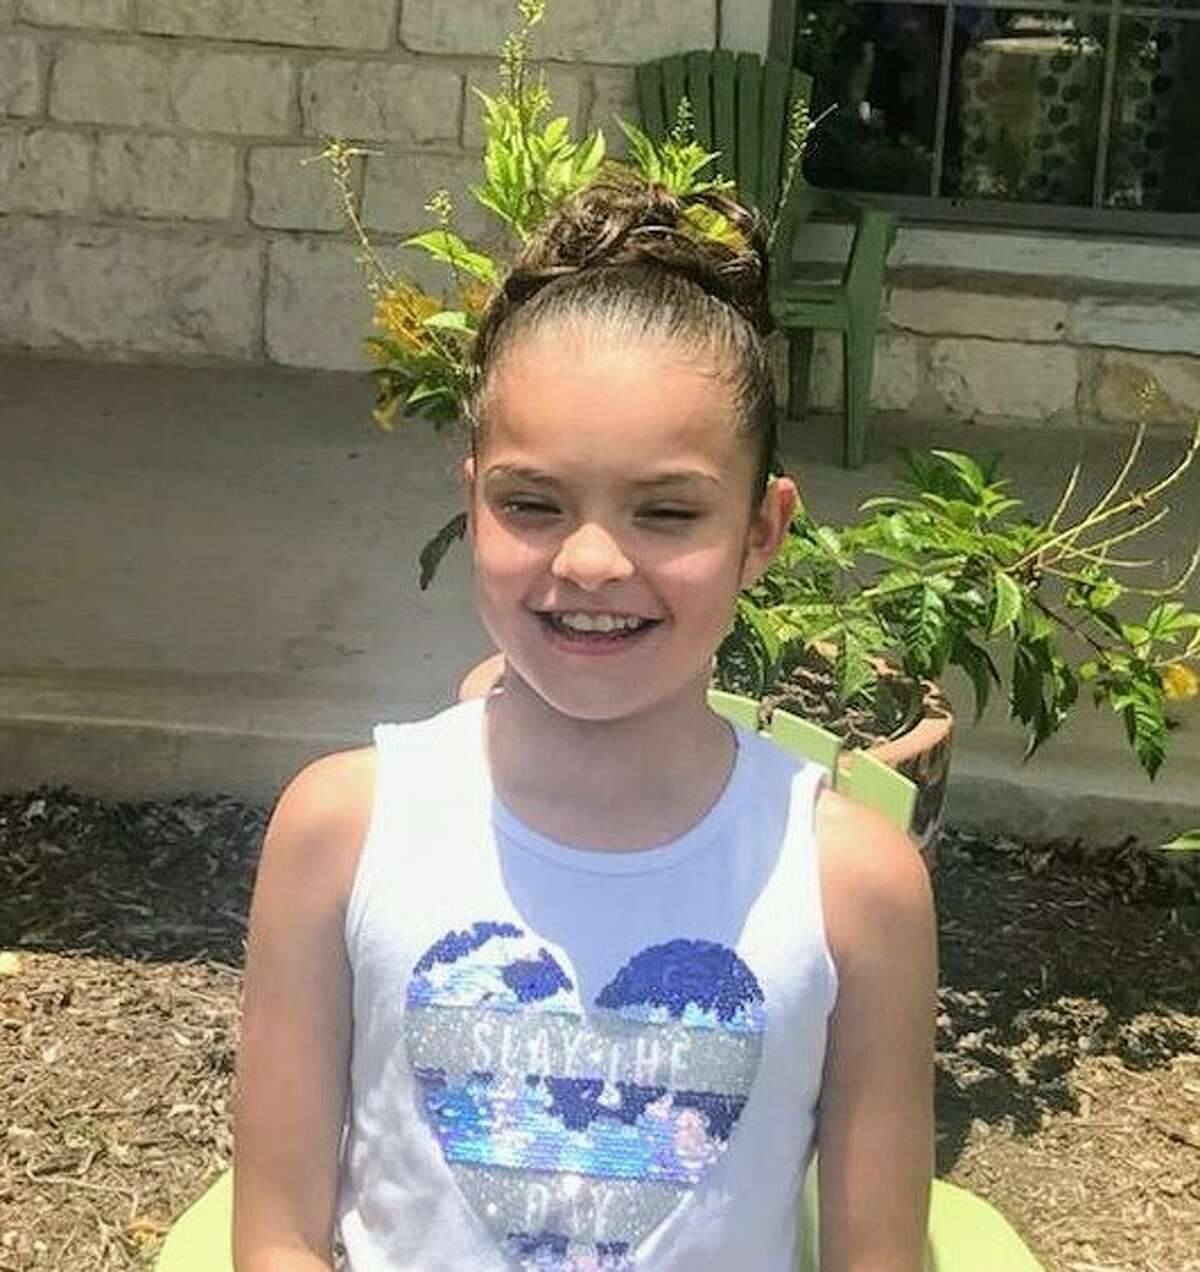 Eleven-year-old Haileyis a curious, active, and playful young girl. She loves to be around others and isn't afraid to show it.